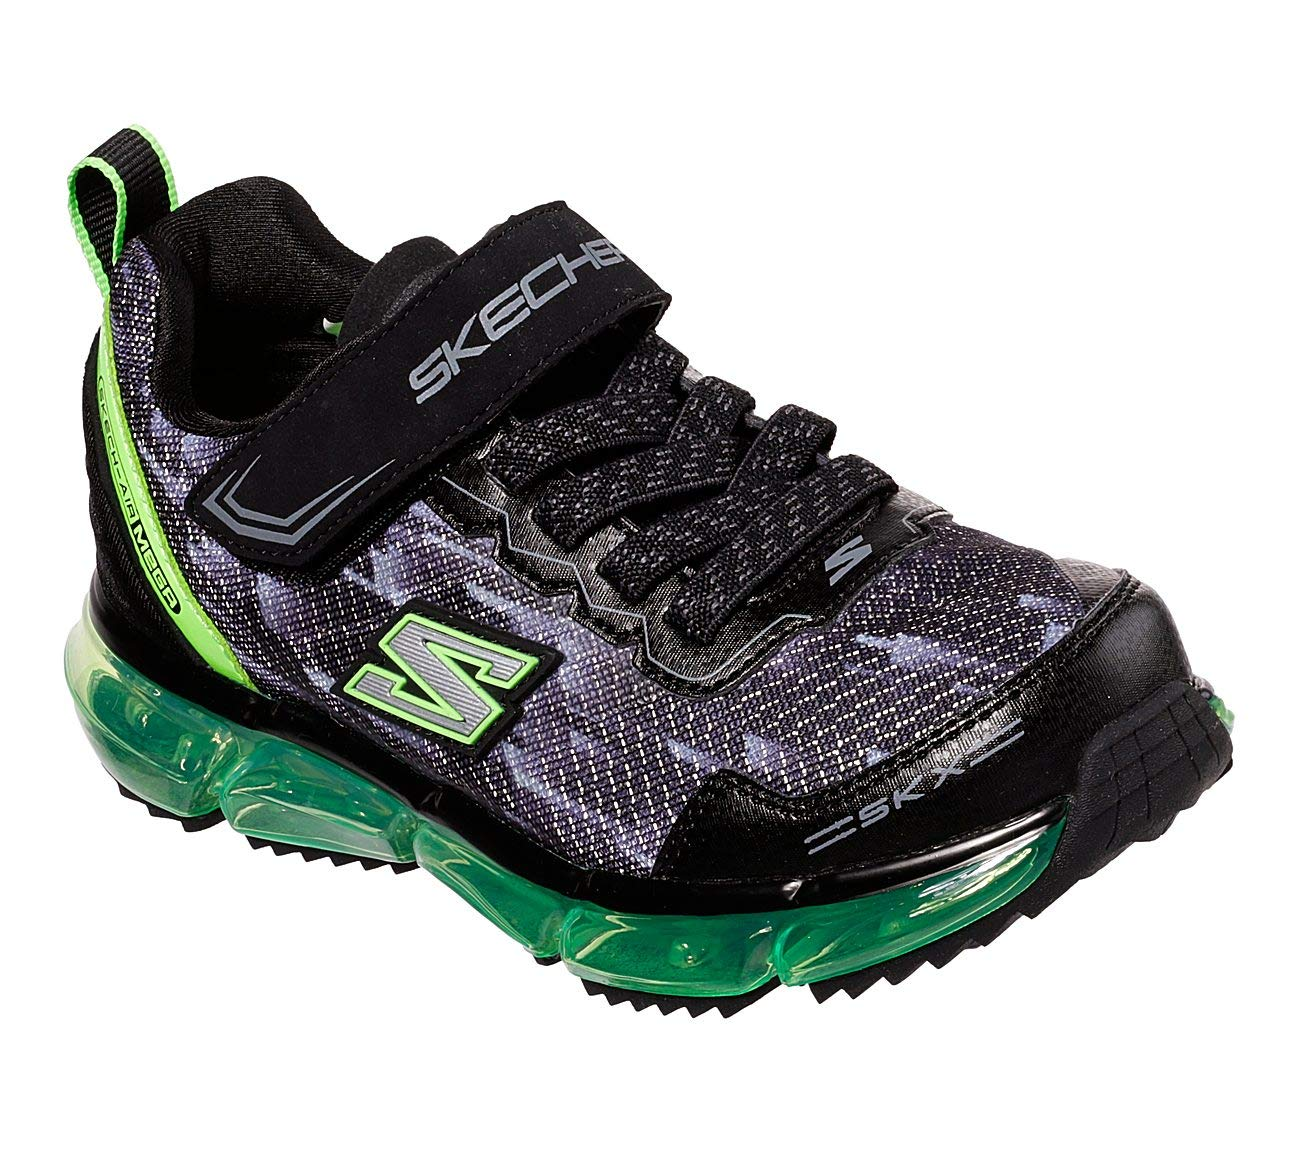 Skechers Boy's Skech-Air Mega - Azide, Training, Black/Lime, 13.5 US M